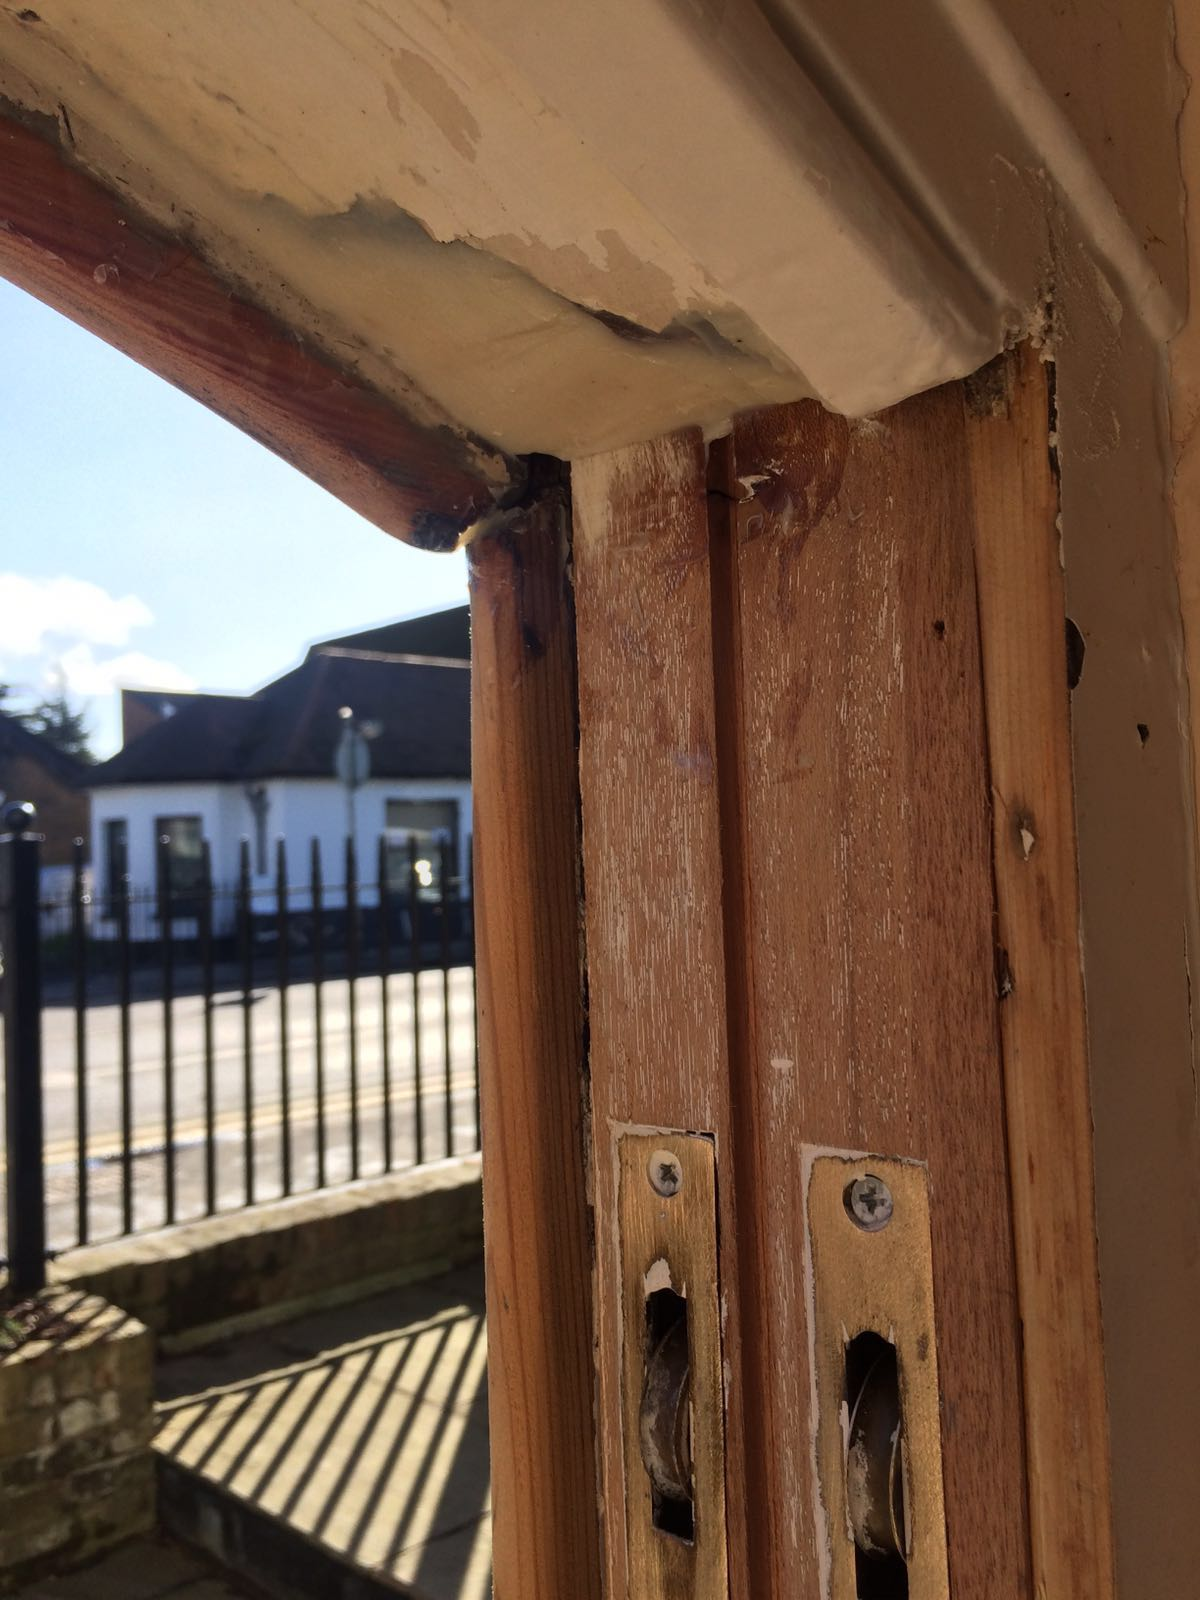 Repairing the timber frames